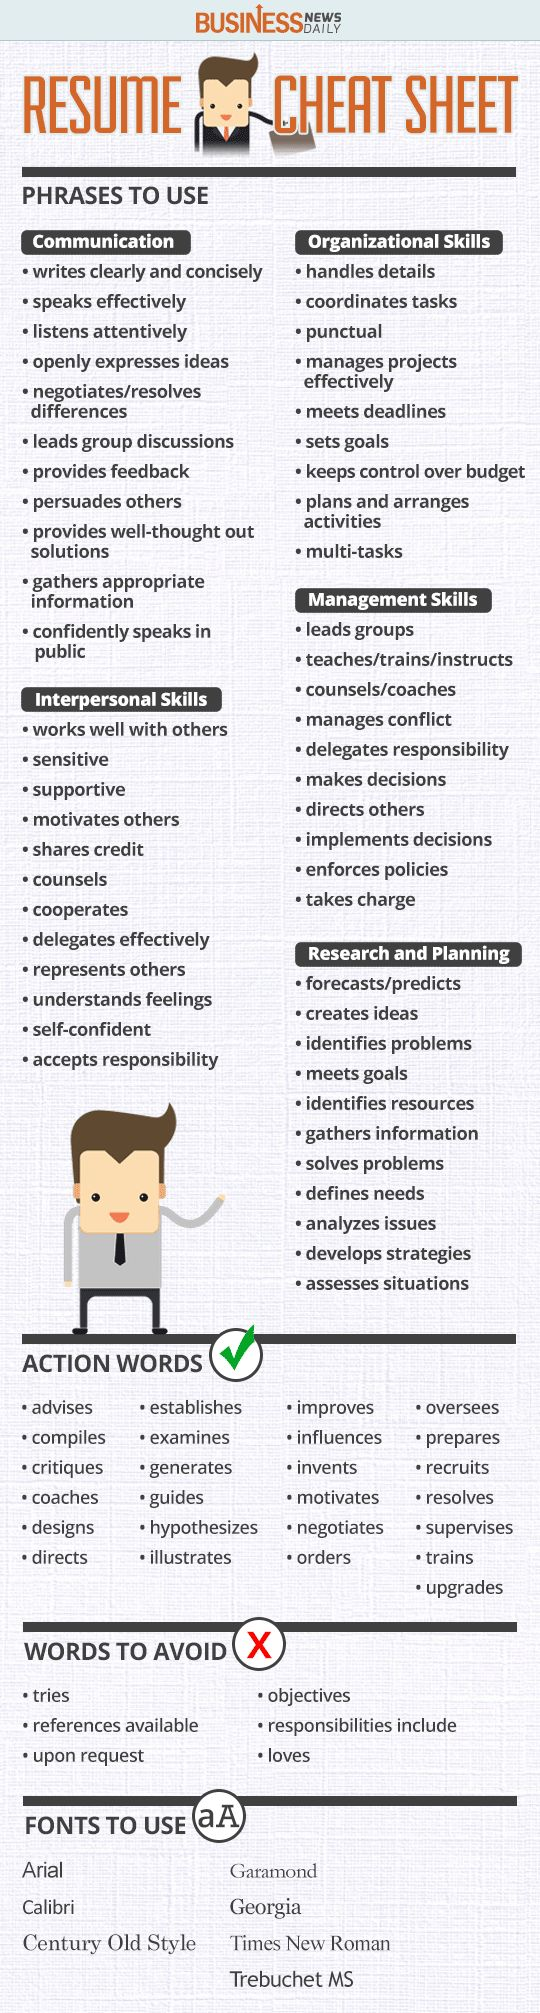 Resume Cheat Sheet #infographic